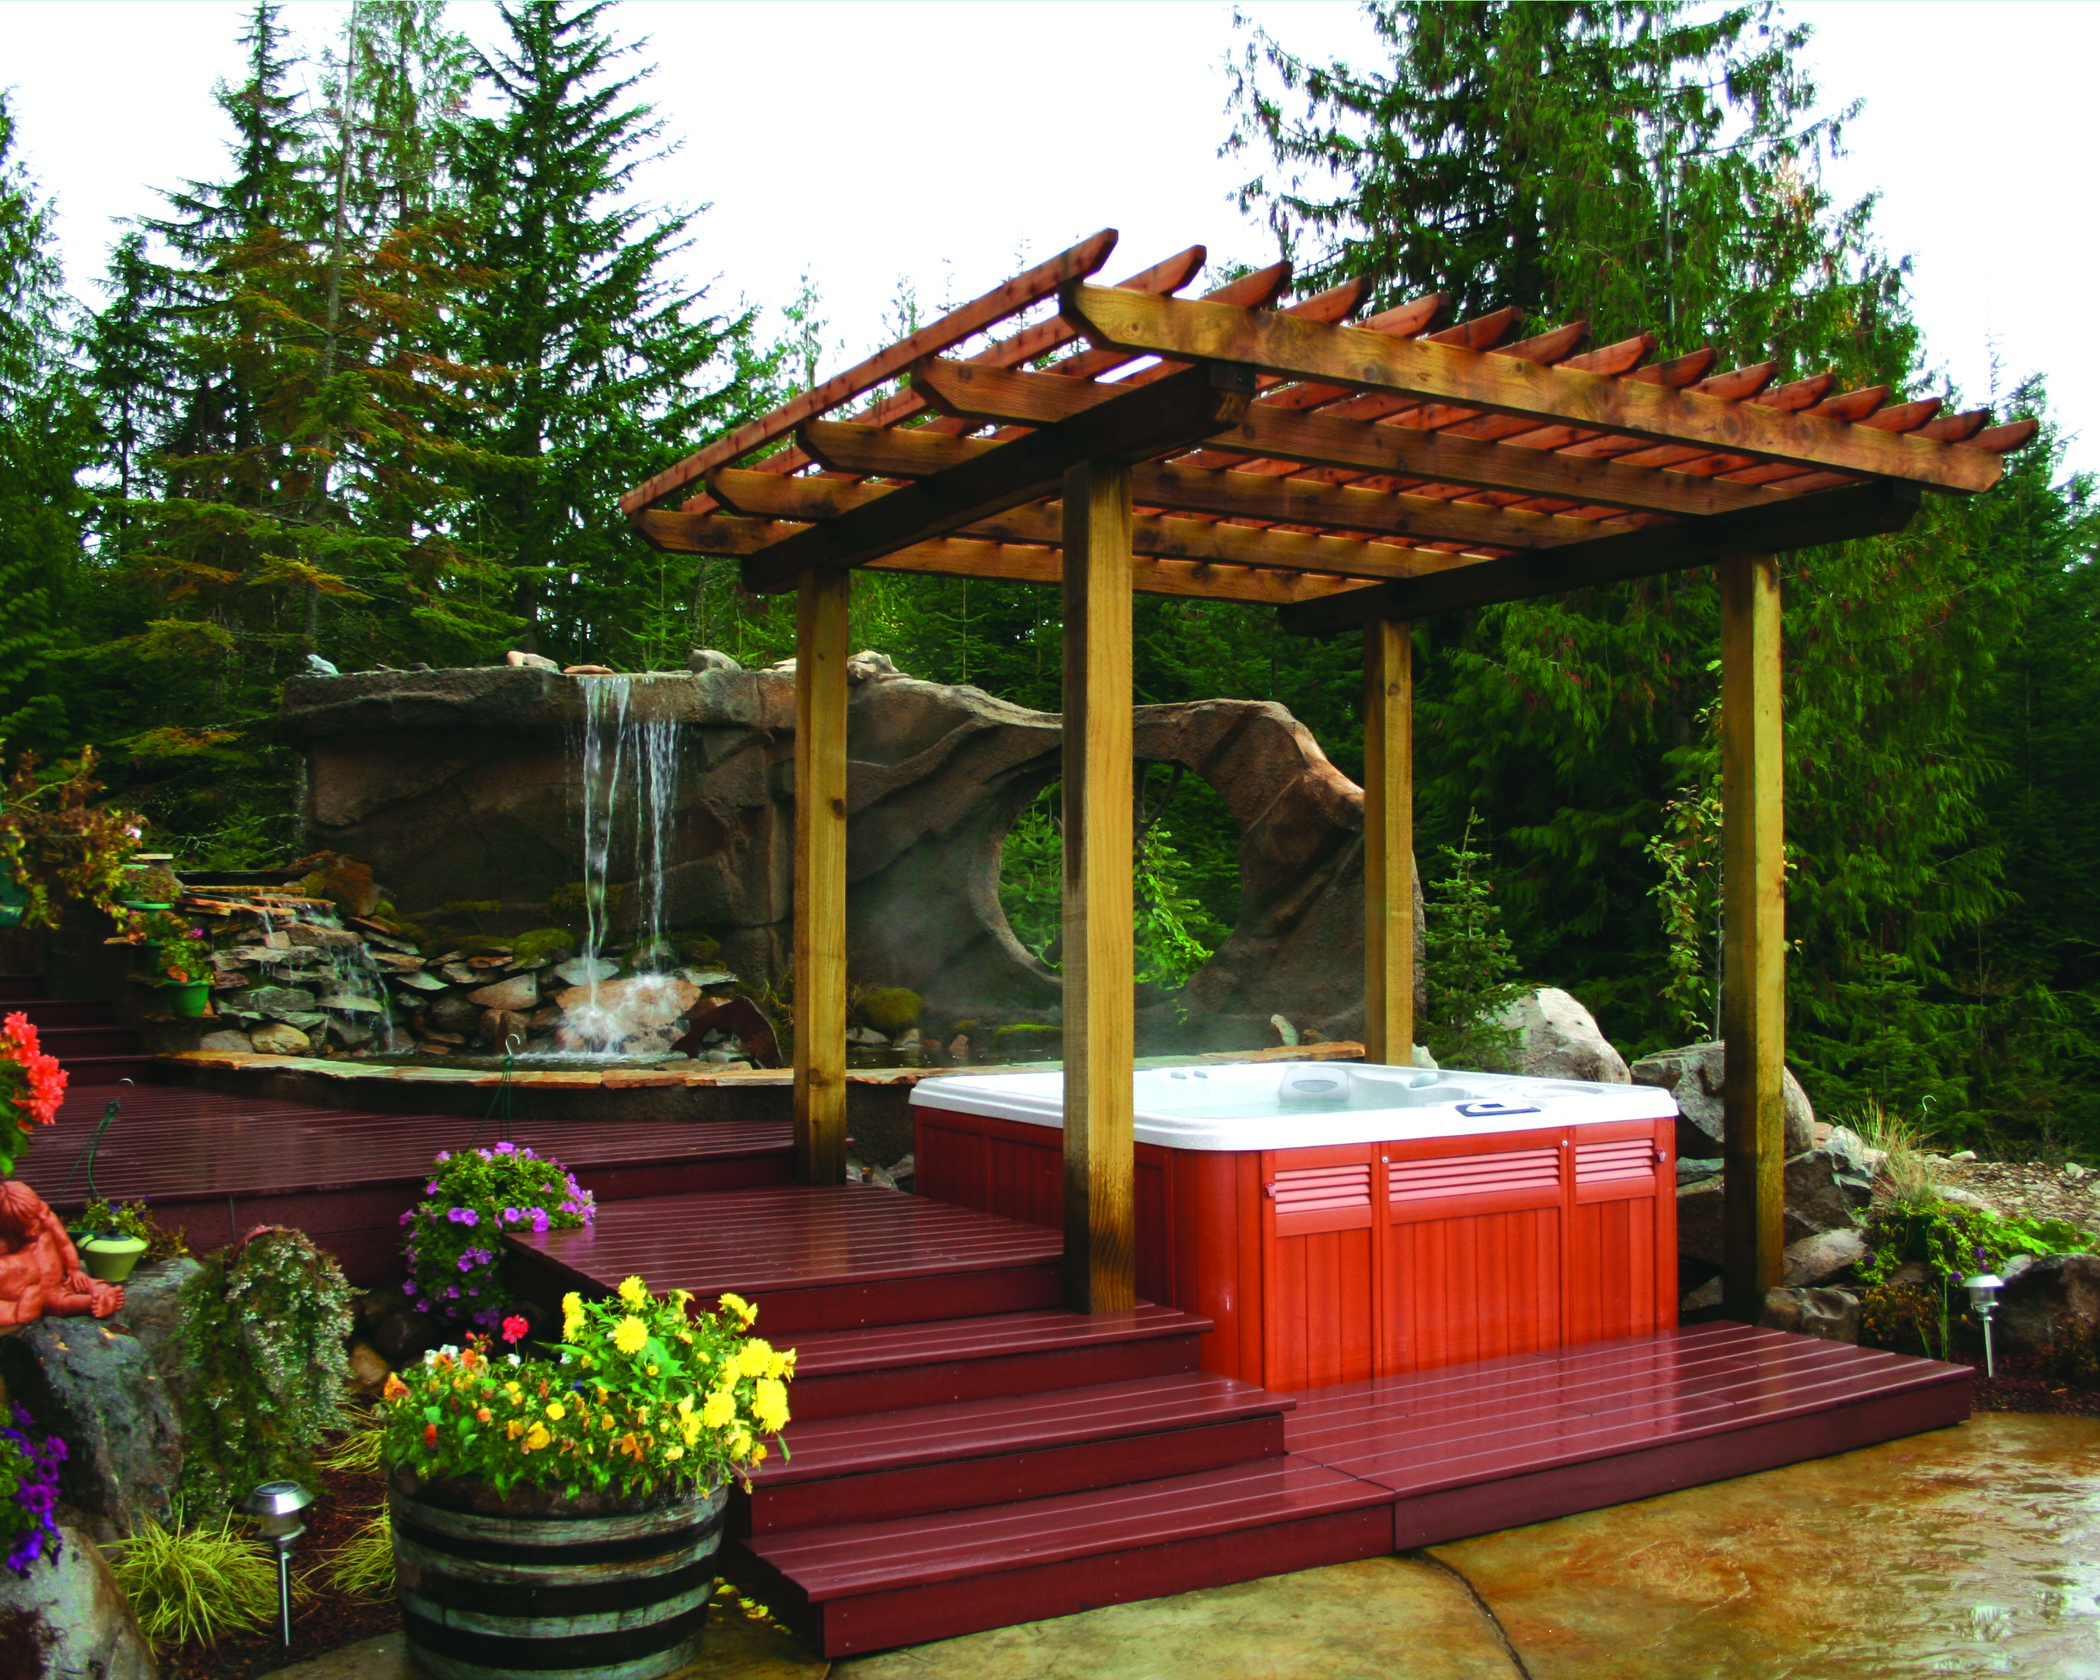 Backyard oasis with a hot tub.